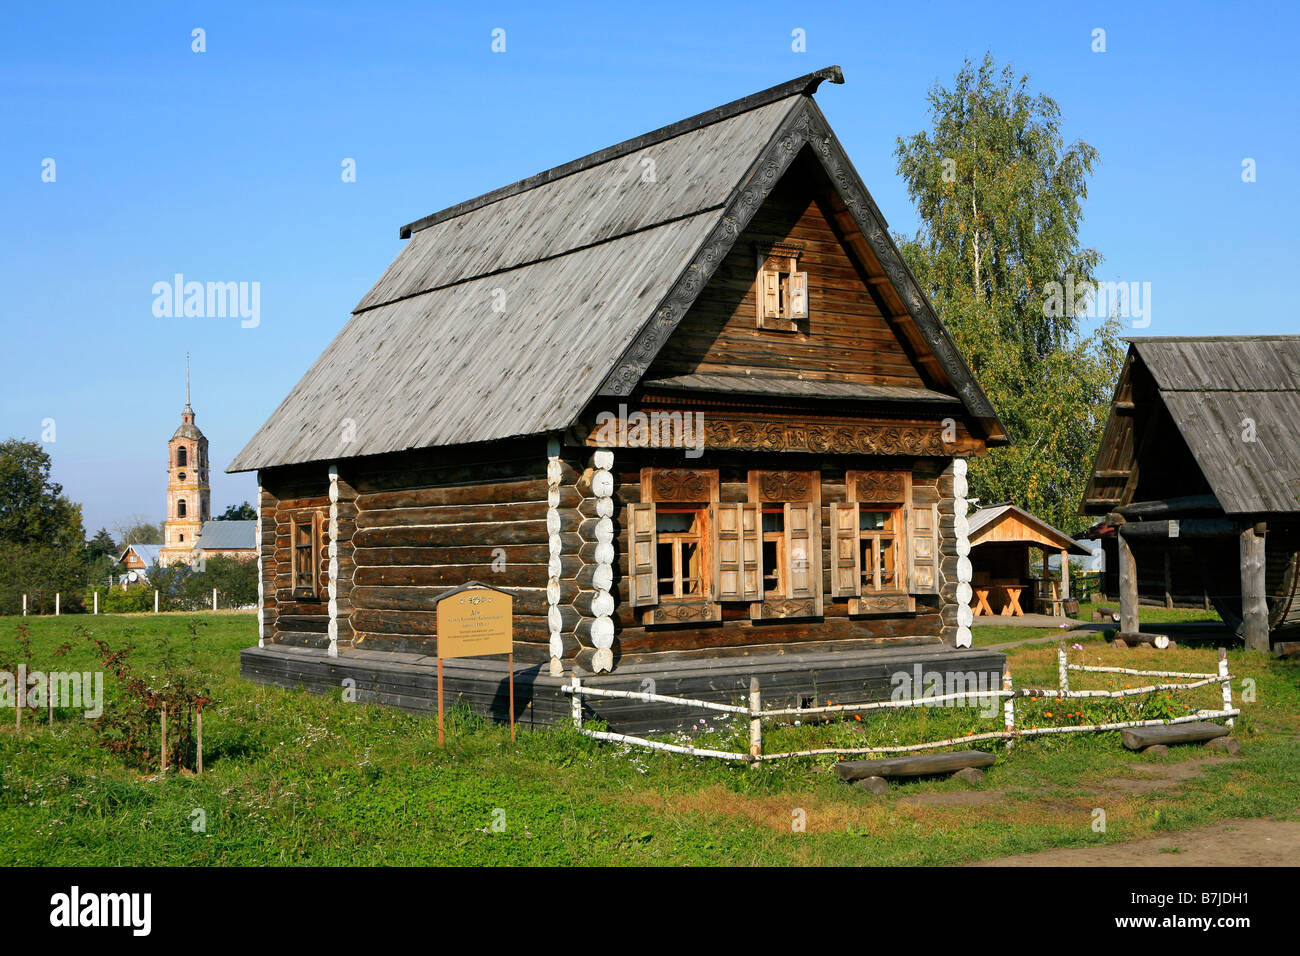 Traditional 19th century Russian house at the Museum of Wooden Architecture in Suzdal, Russia - Stock Image